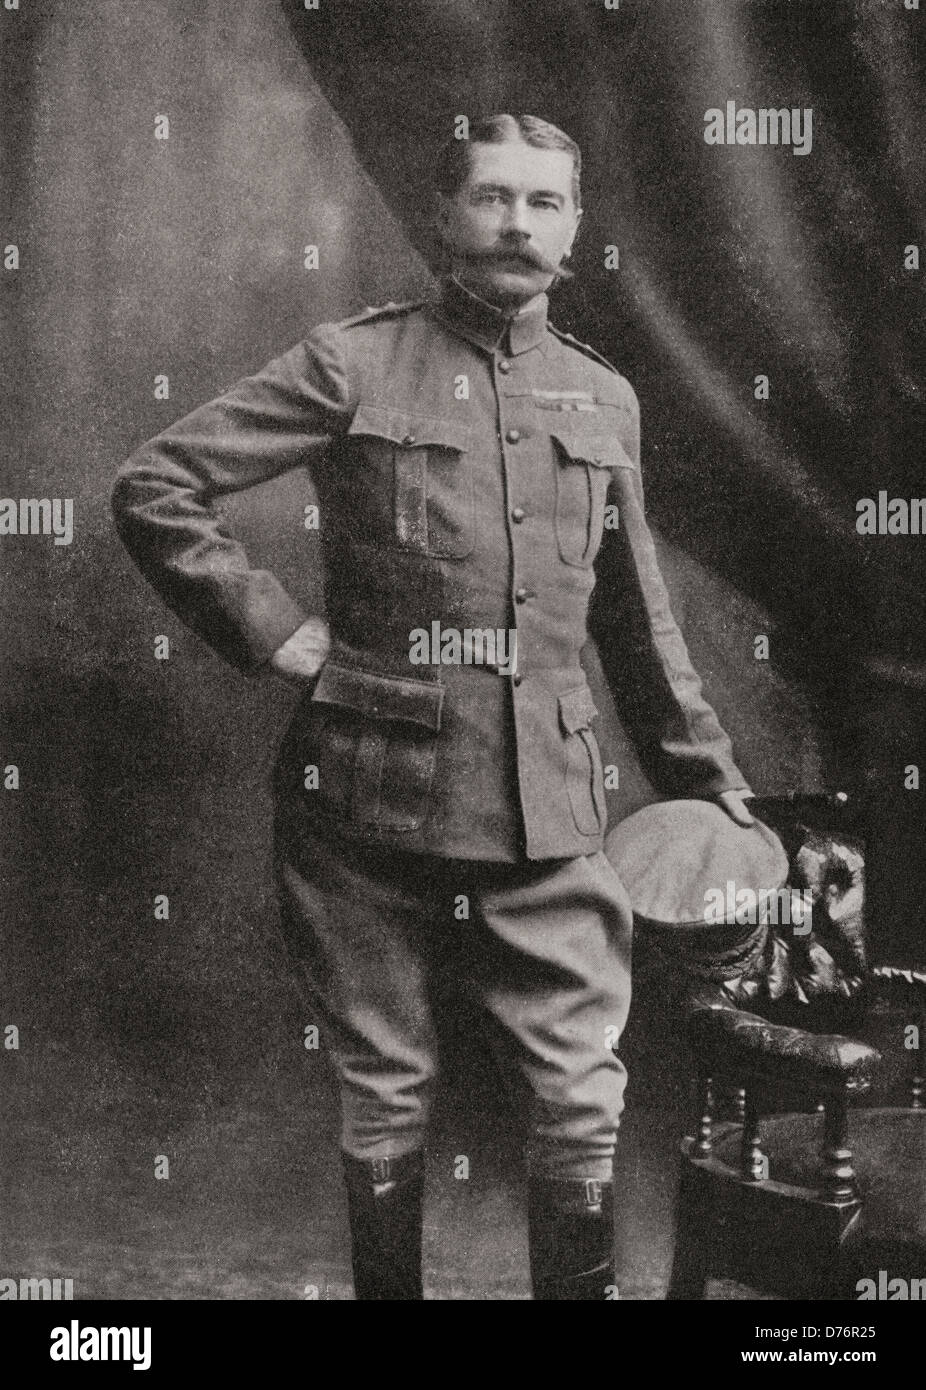 Lord Kitchener in South African Campaign uniform. - Stock Image